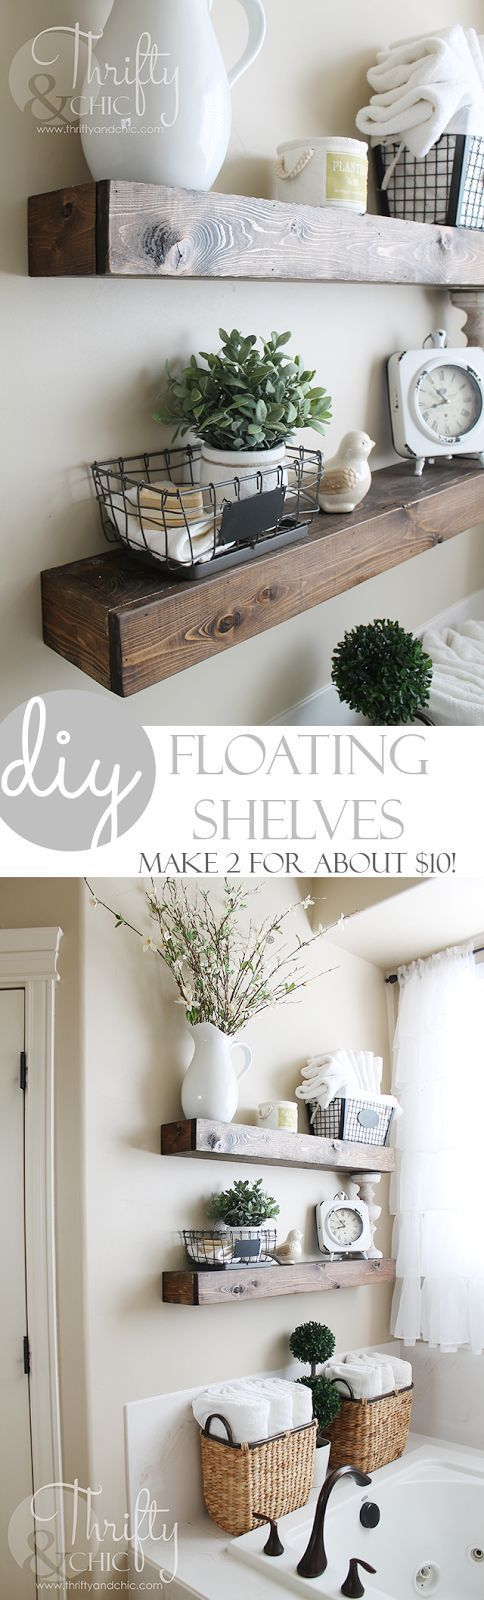 DIY Floating Shelves just like the ones from Fixer Upper! Make 2 of these for abou